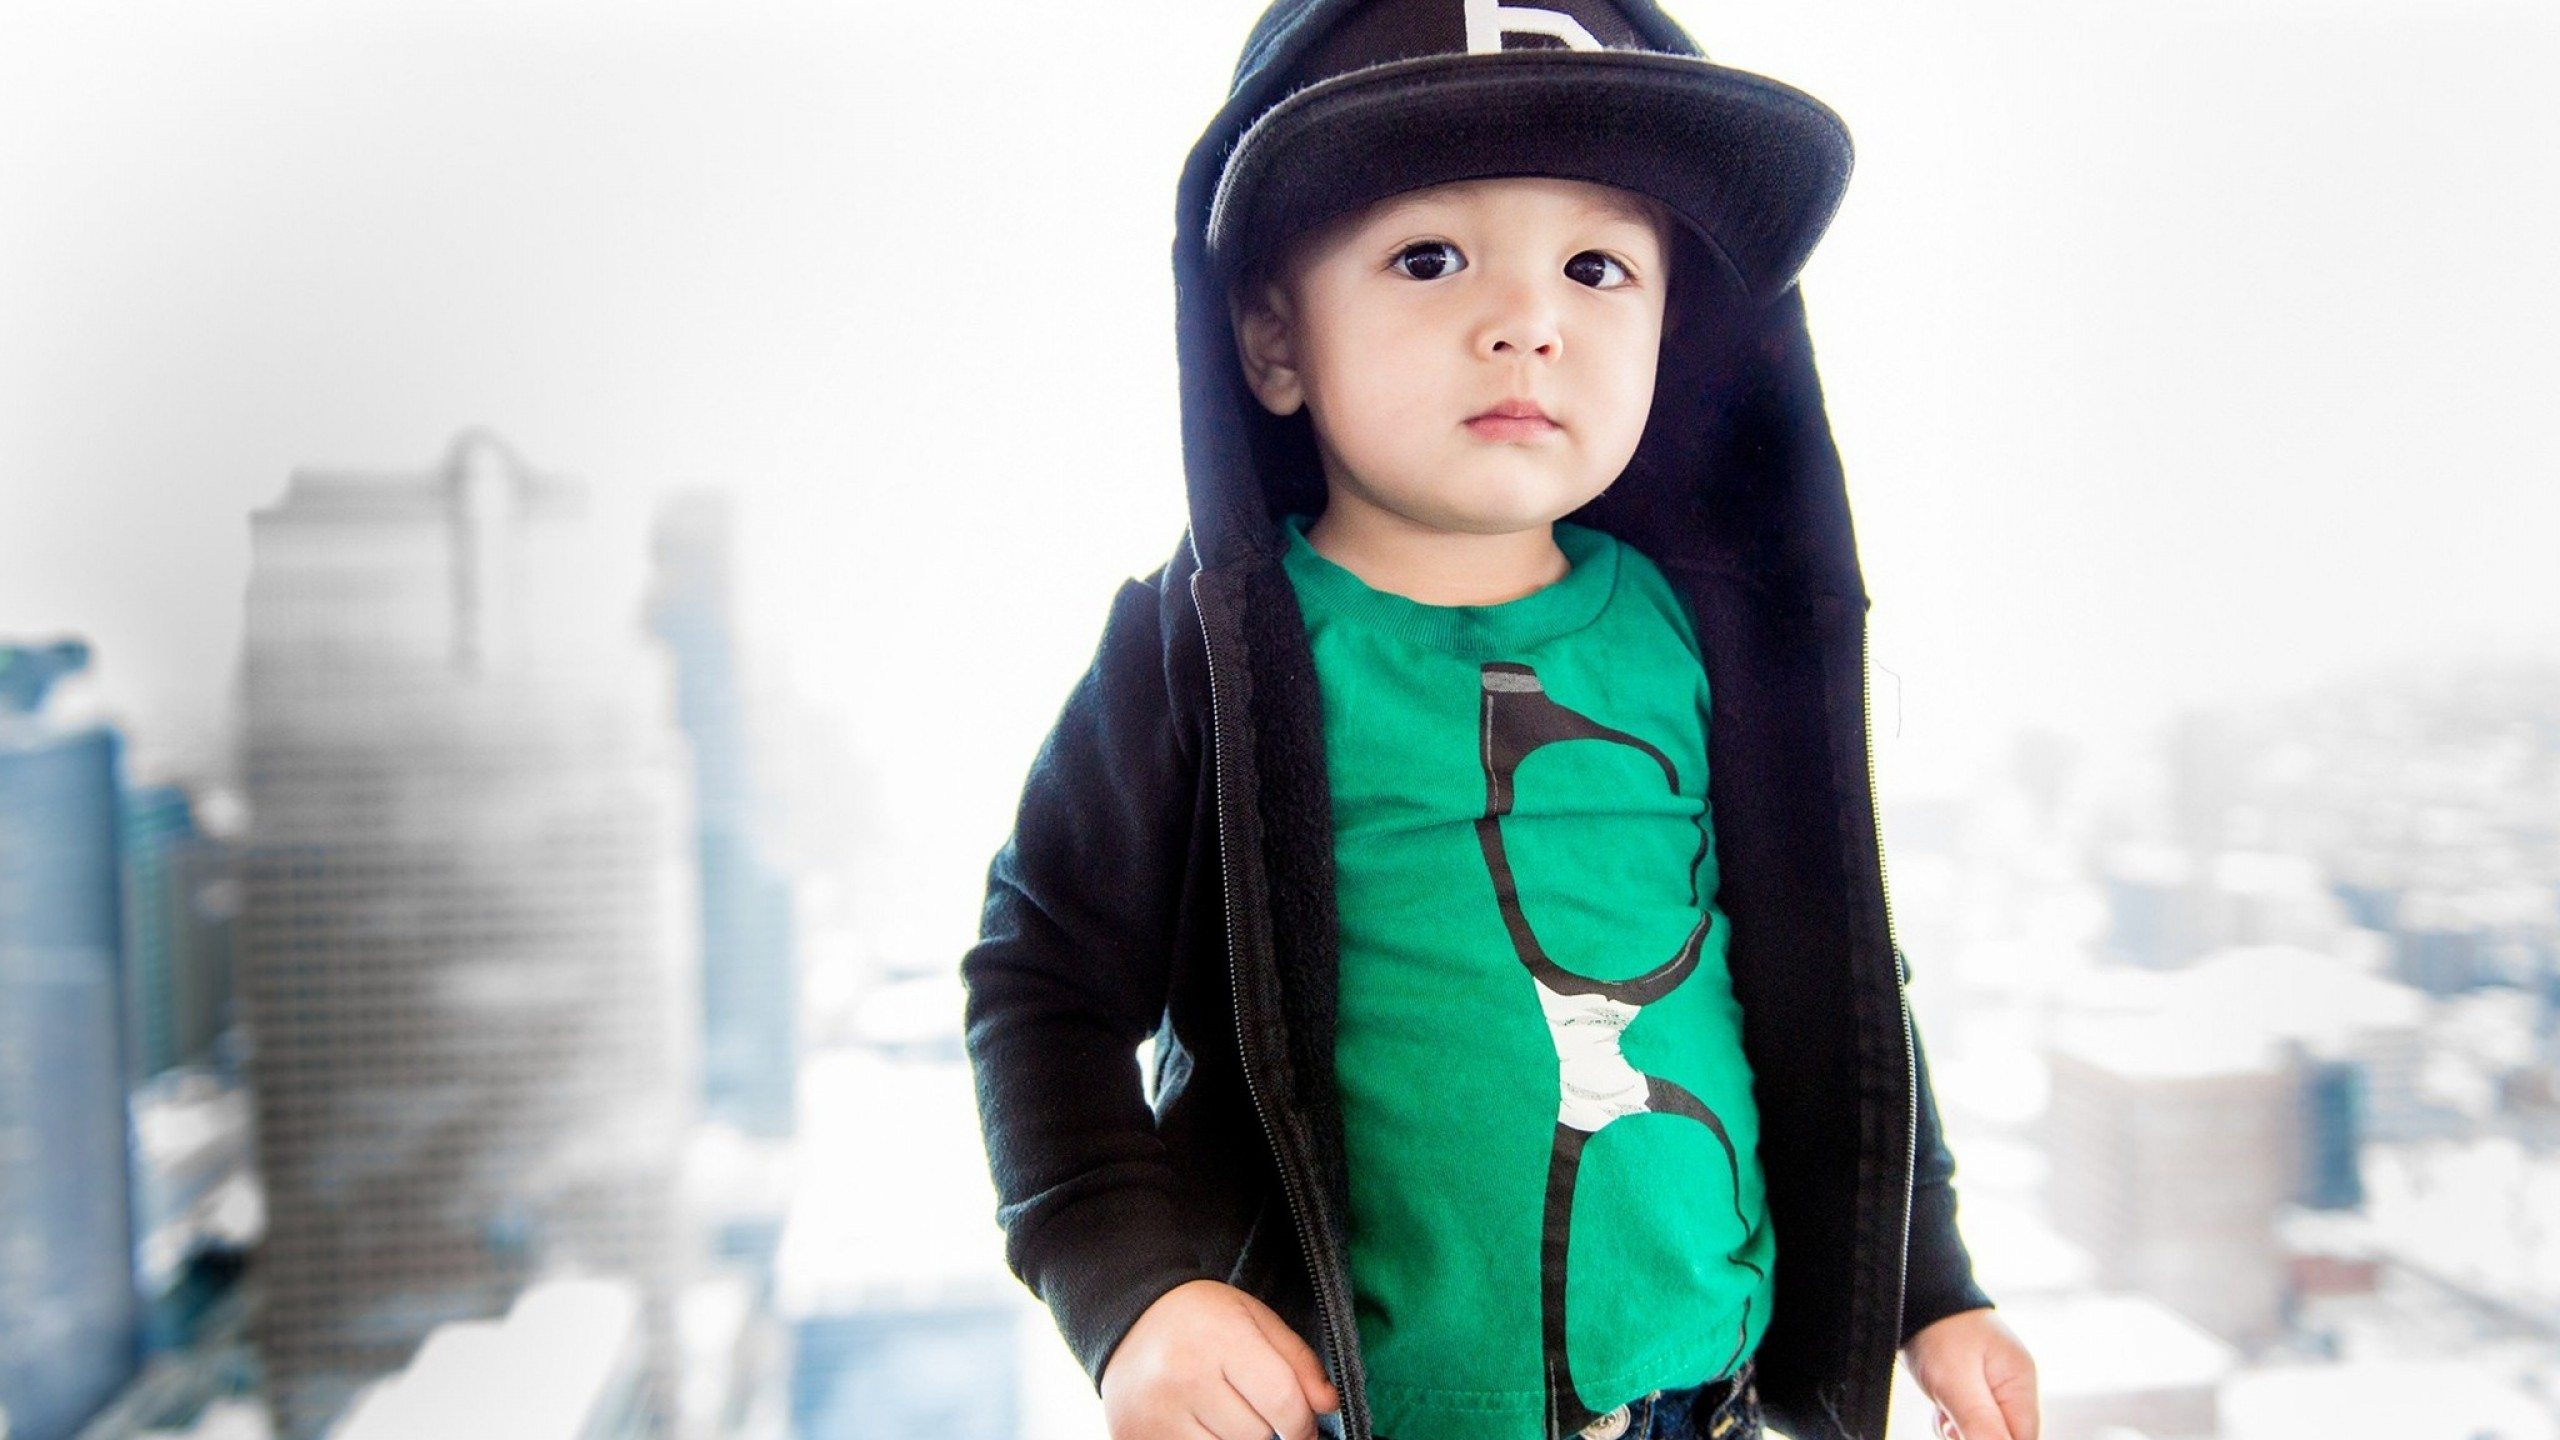 B-Cool-Stylish-Baby-Wallpaper